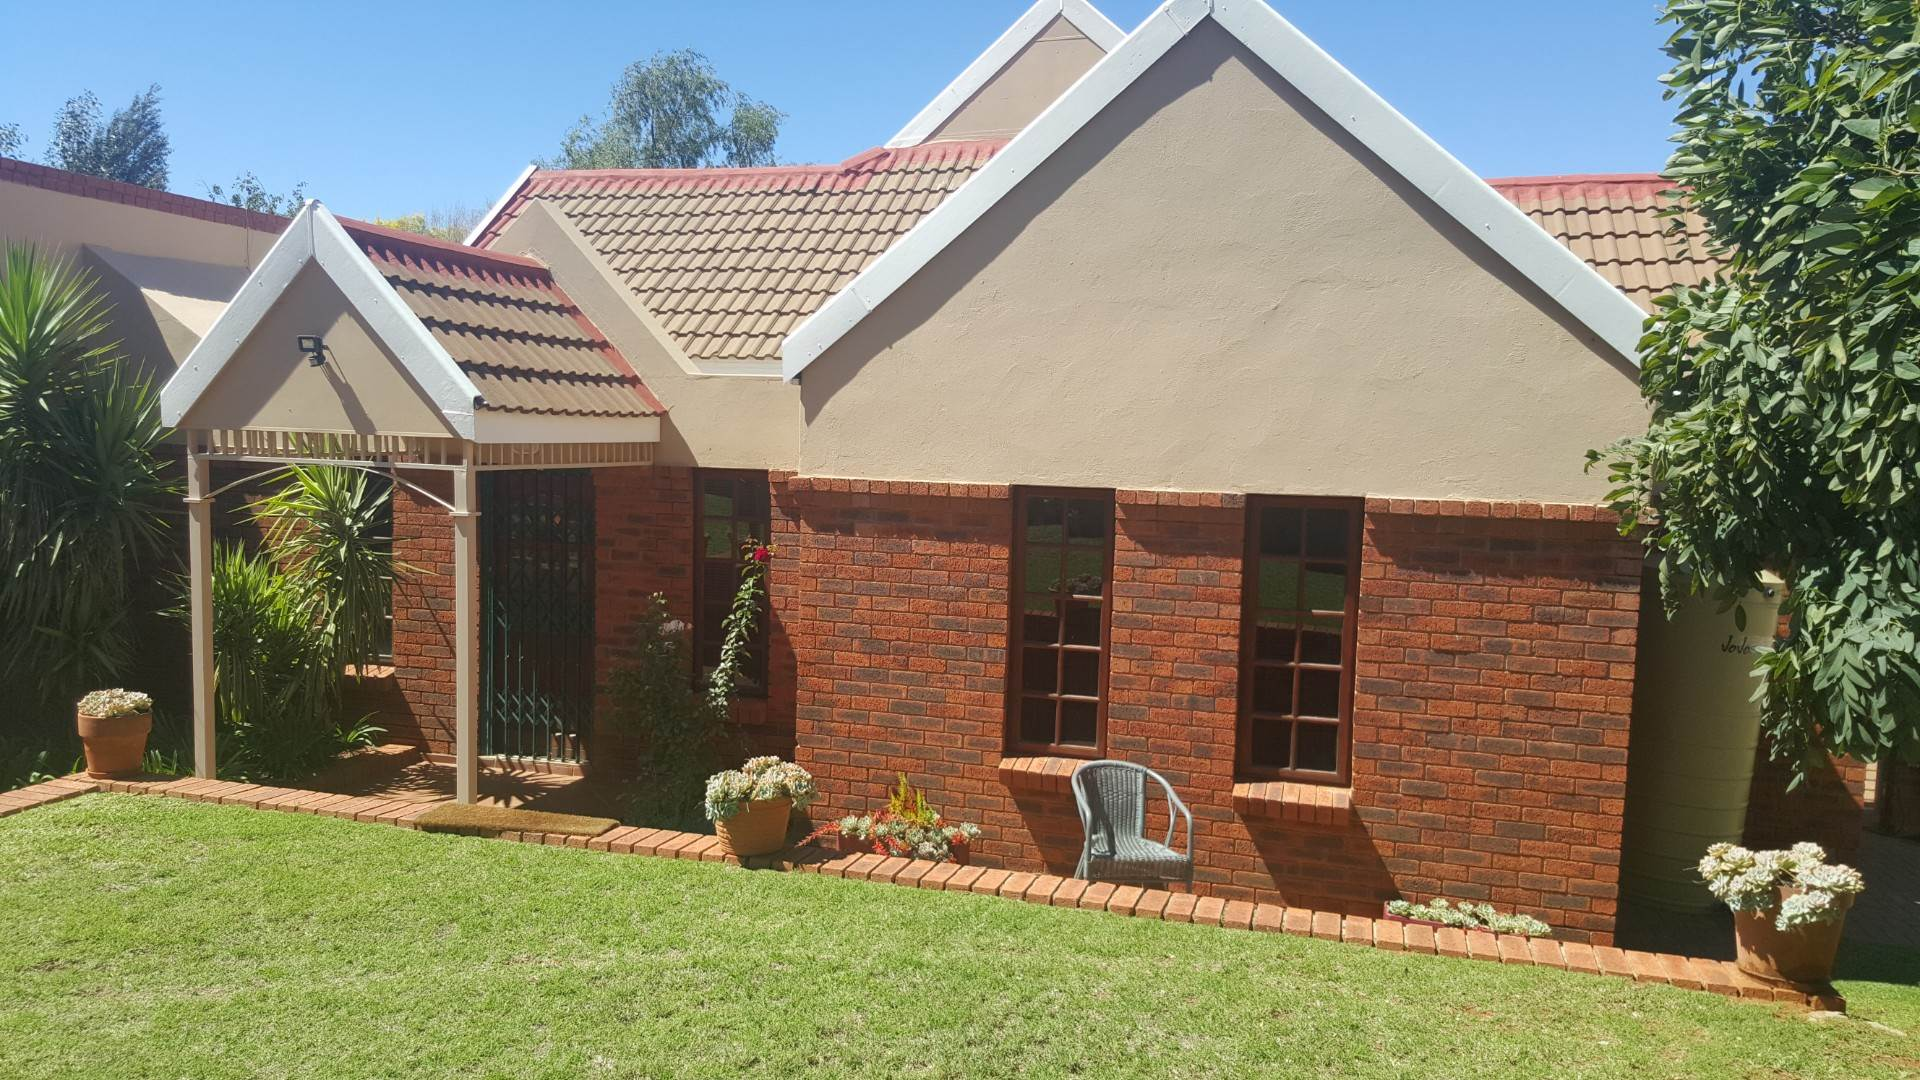 3 BedroomHouse For Sale In Baysvalley